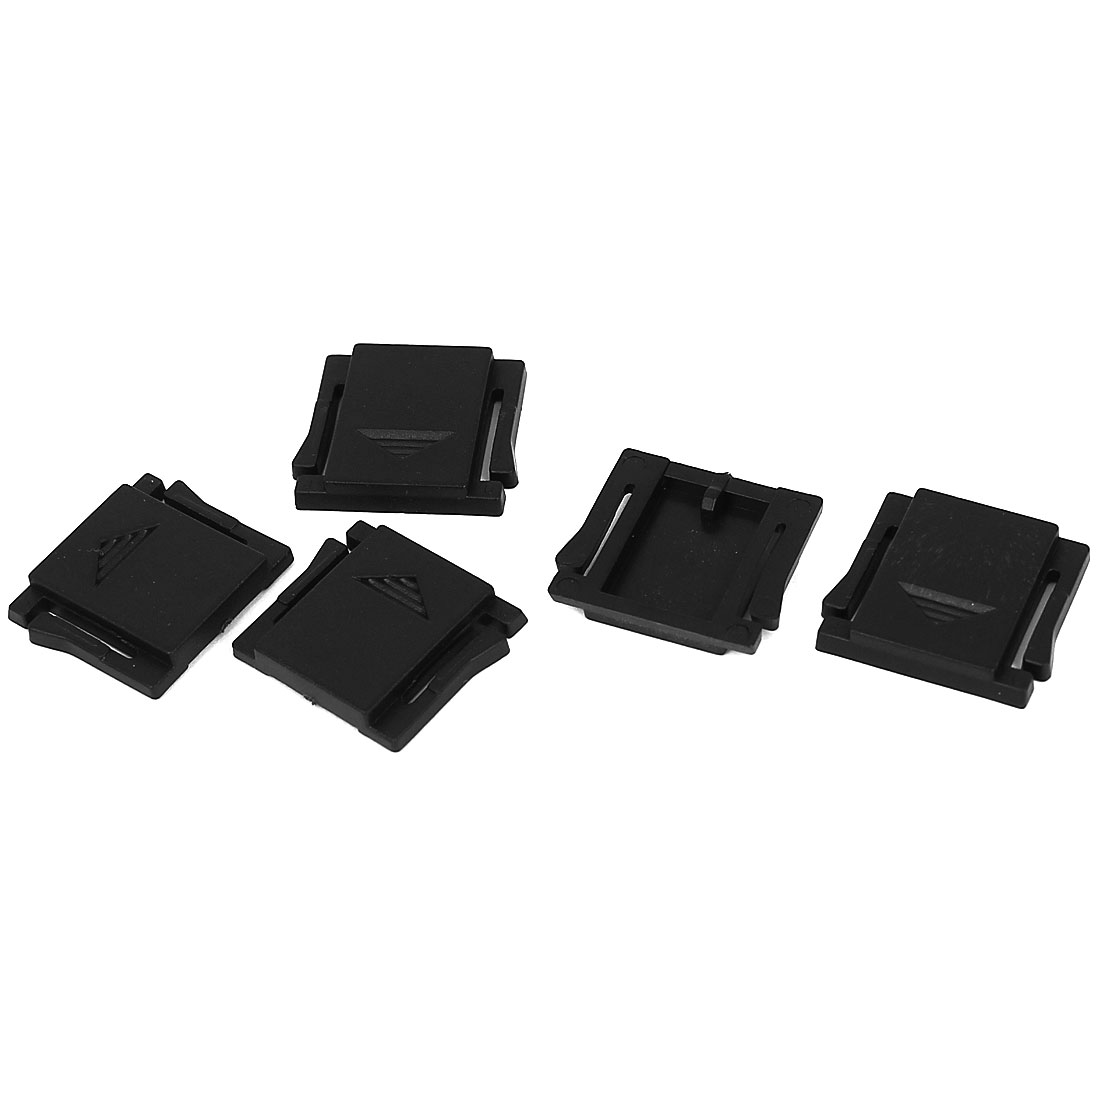 5Pcs Plastic Hot Shoe Portector Cover Cap for Dgital DSLR SLR Camara Black